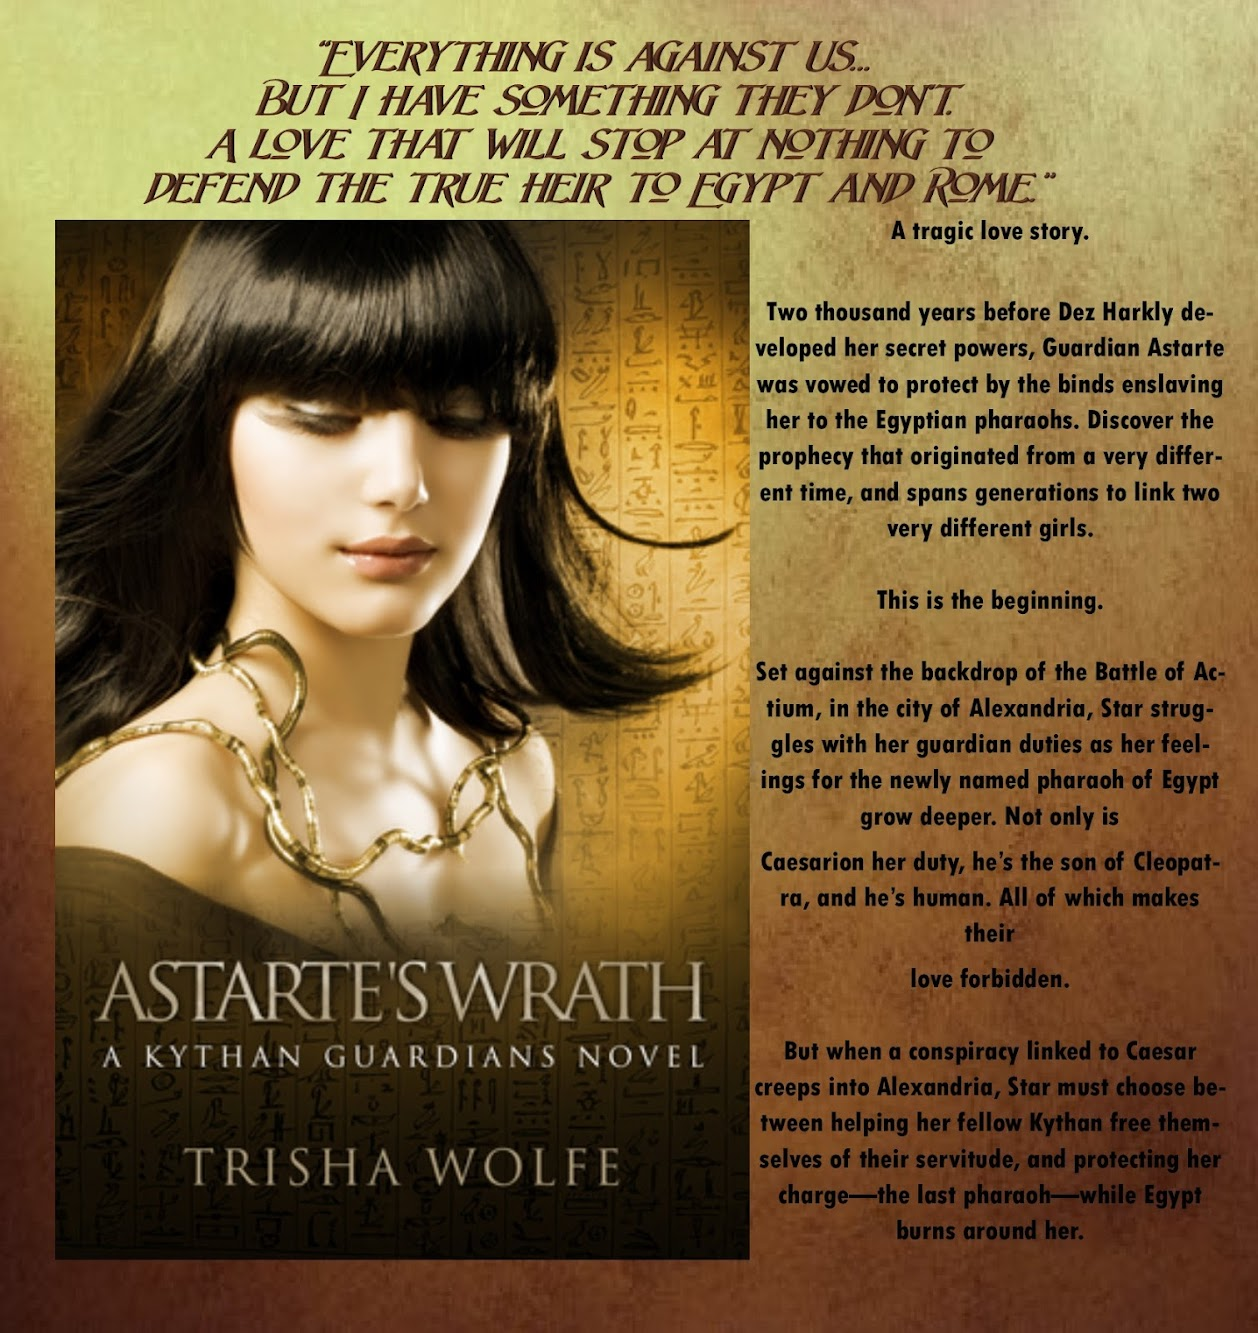 Book Blast: Astarte's Wrath by Trisha Wolfe